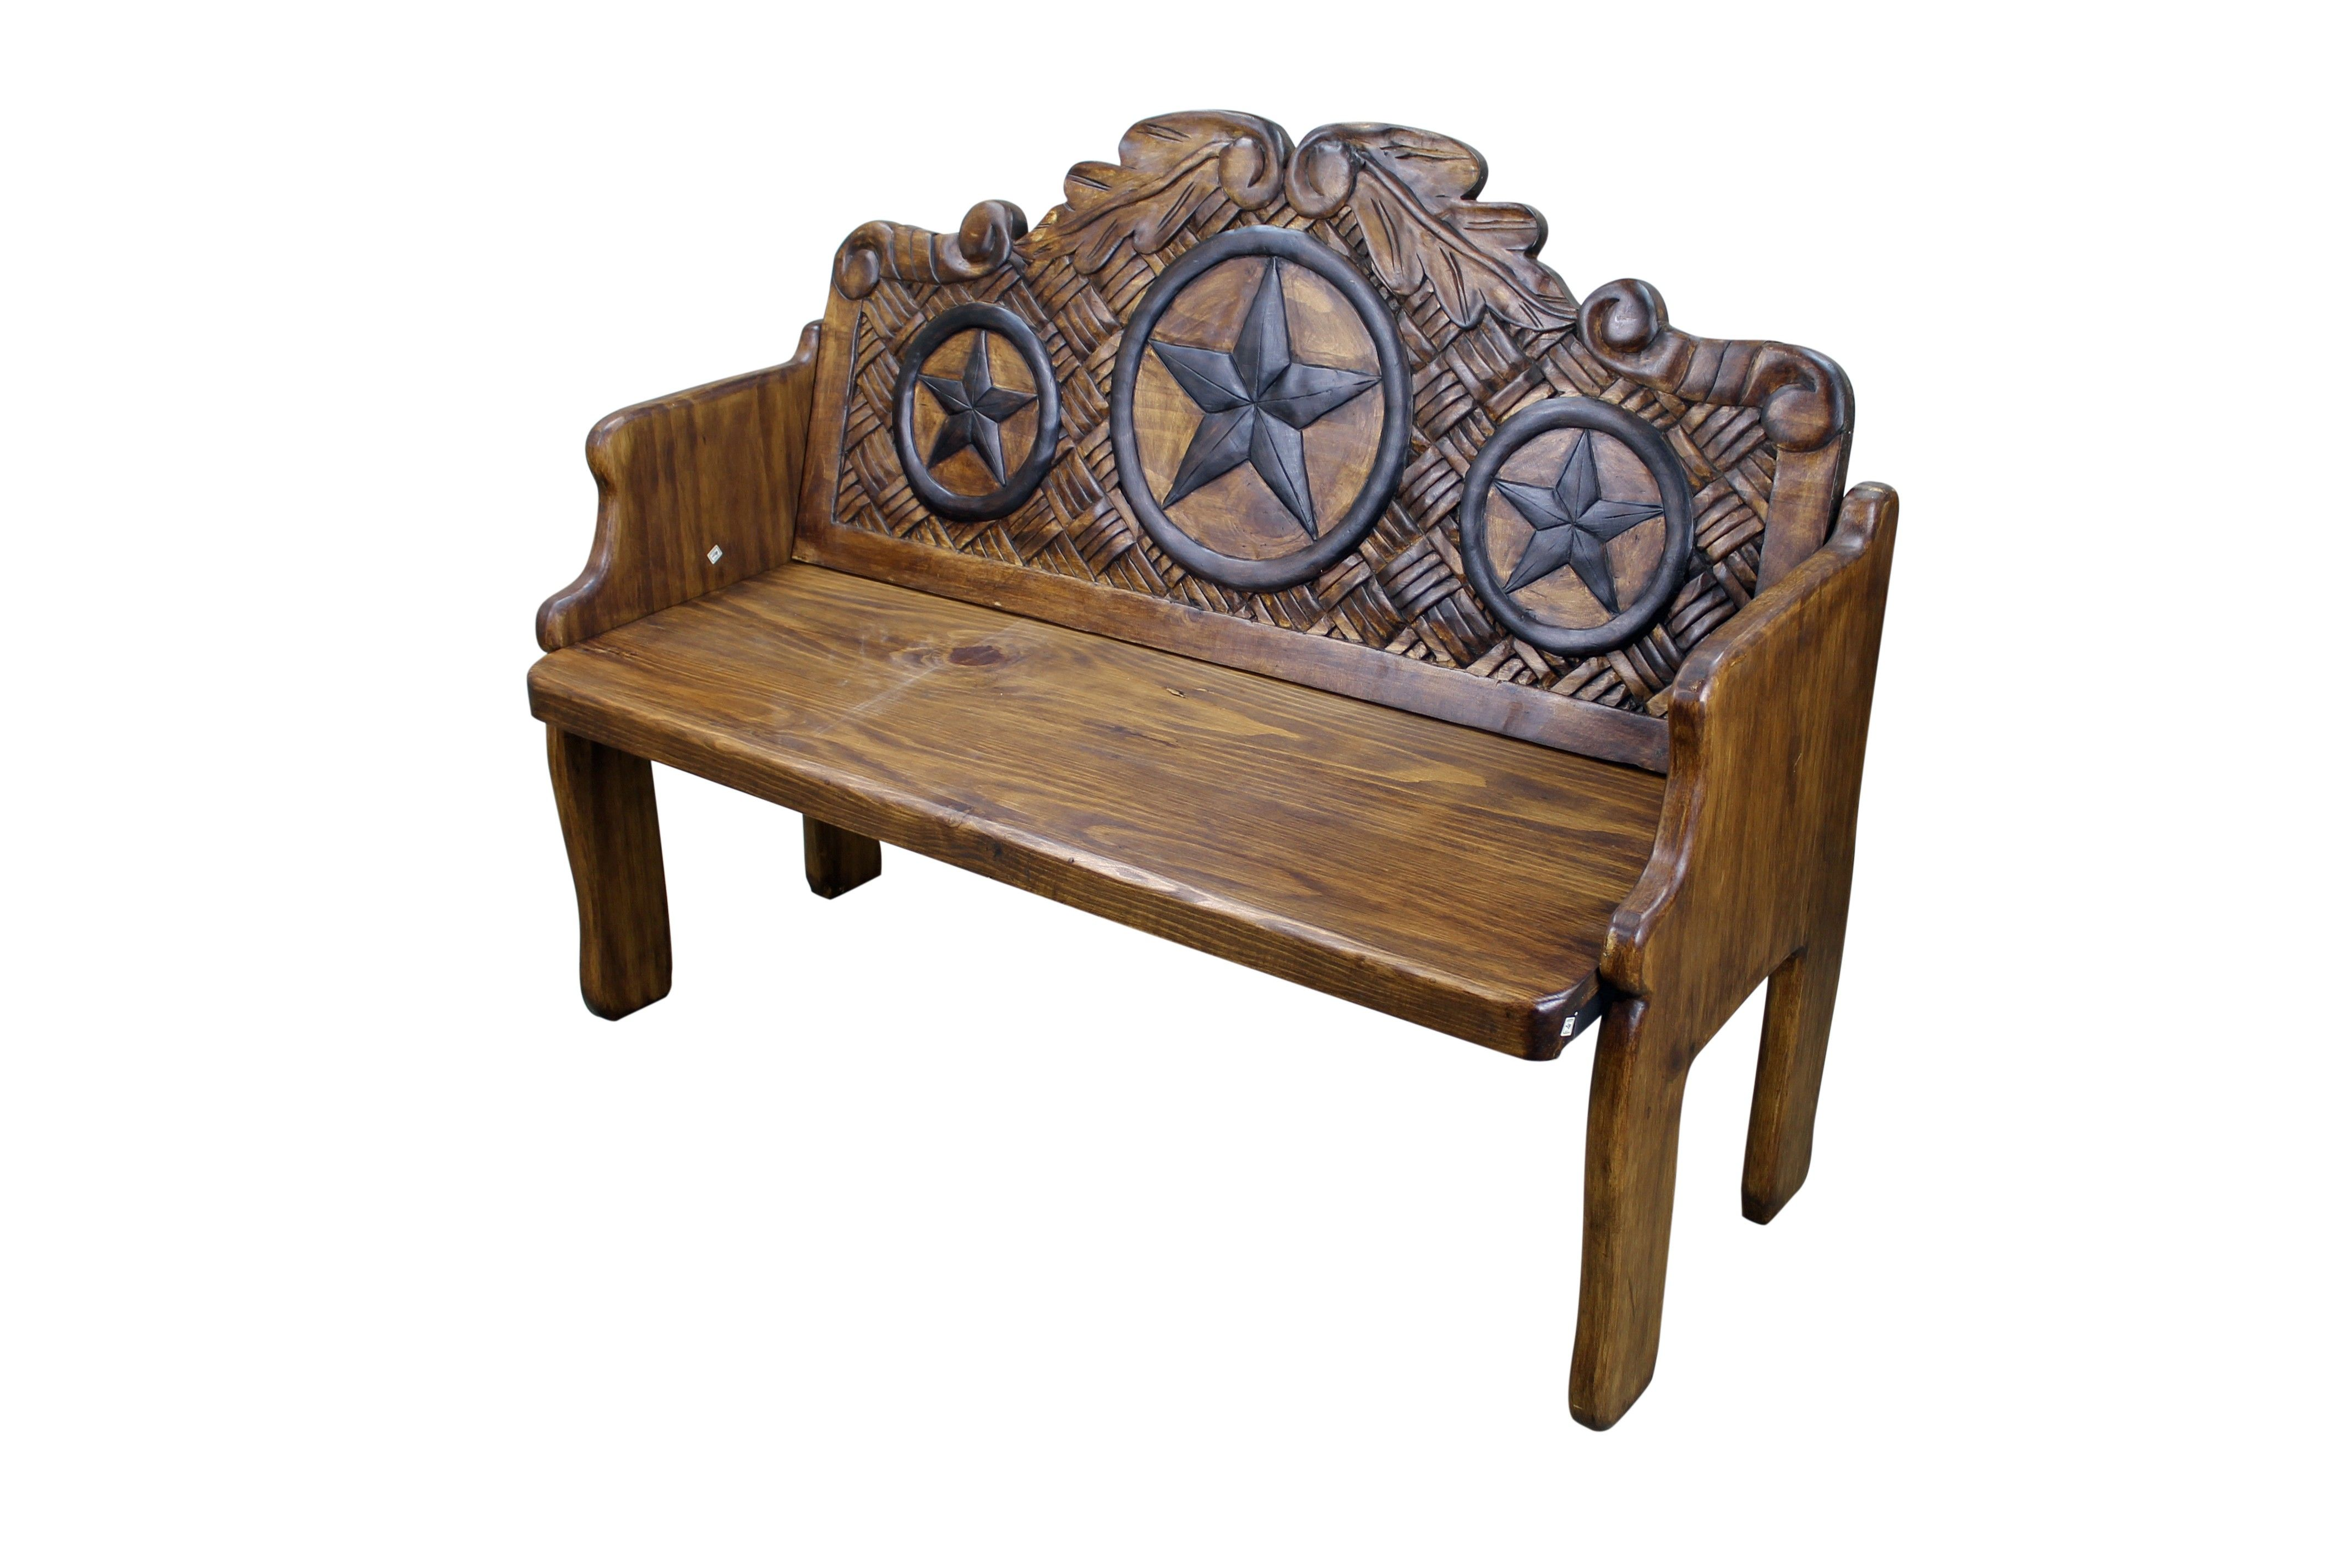 furniture in mexico. Painted Furniture Mexico | Mexican Accessories In E